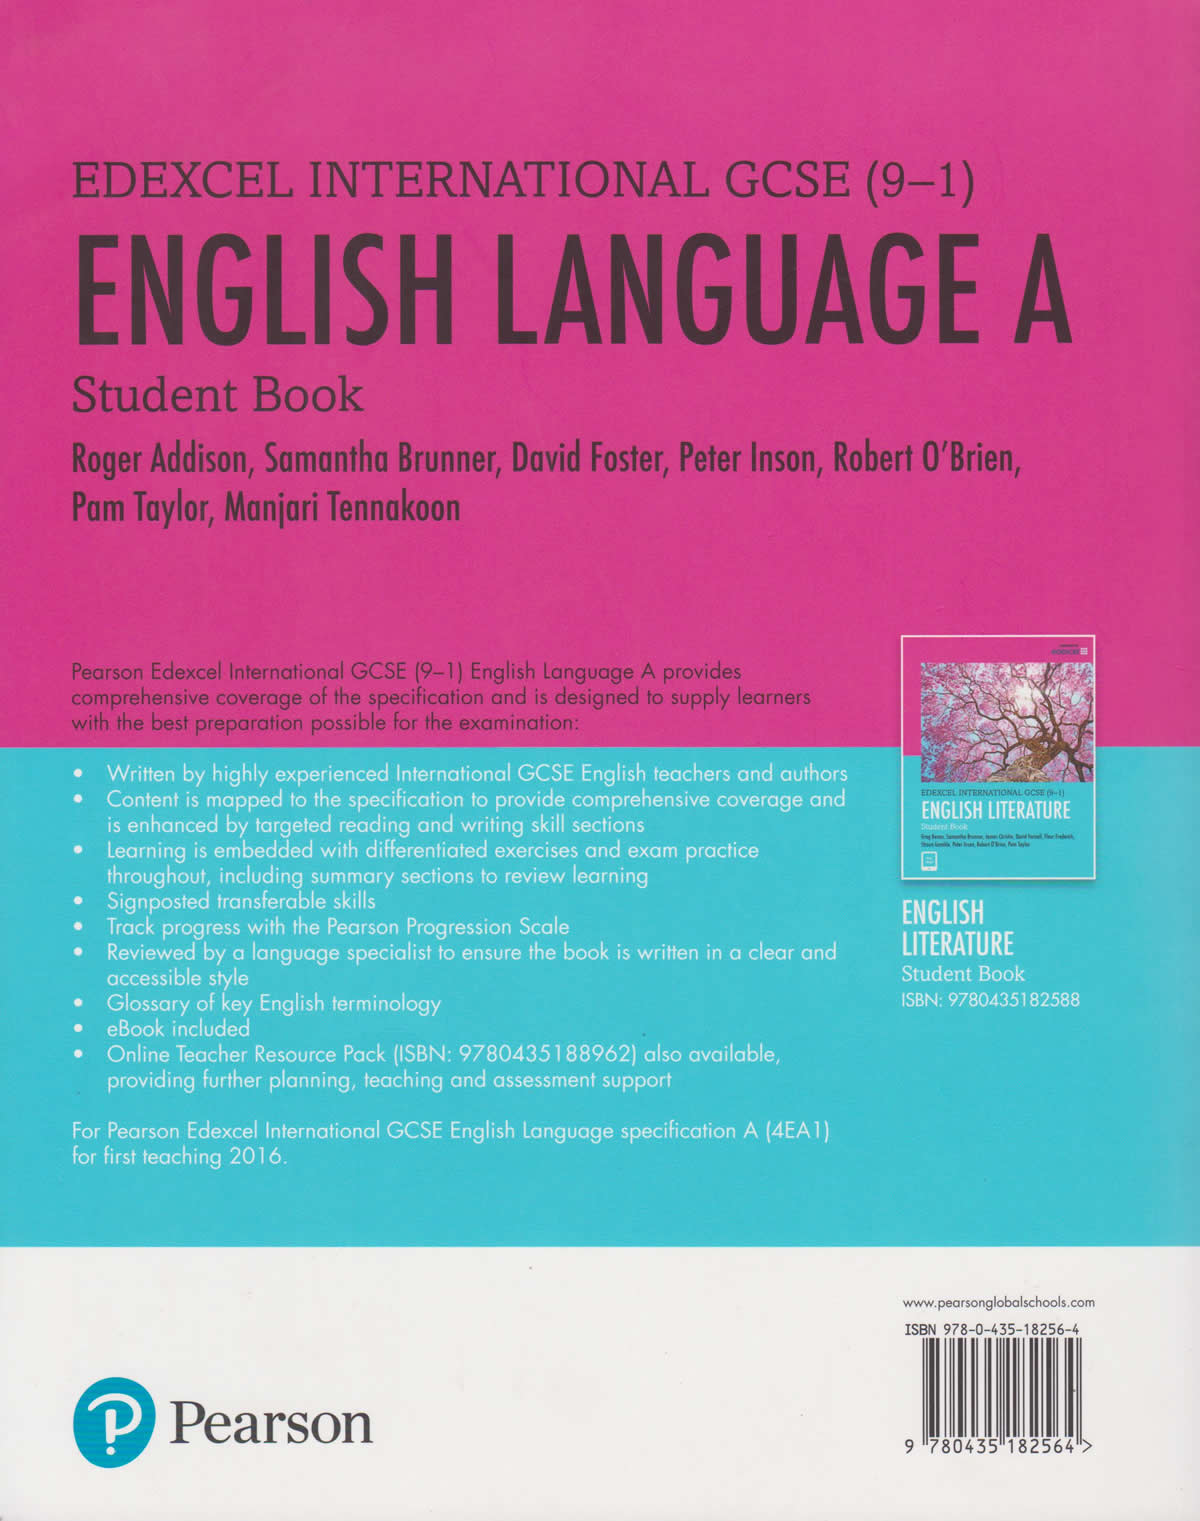 Edexcel International GCSE (9-1) English Language A Student Book | Books,  Stationery, Computers, Laptops and more  Buy online and get free delivery  on